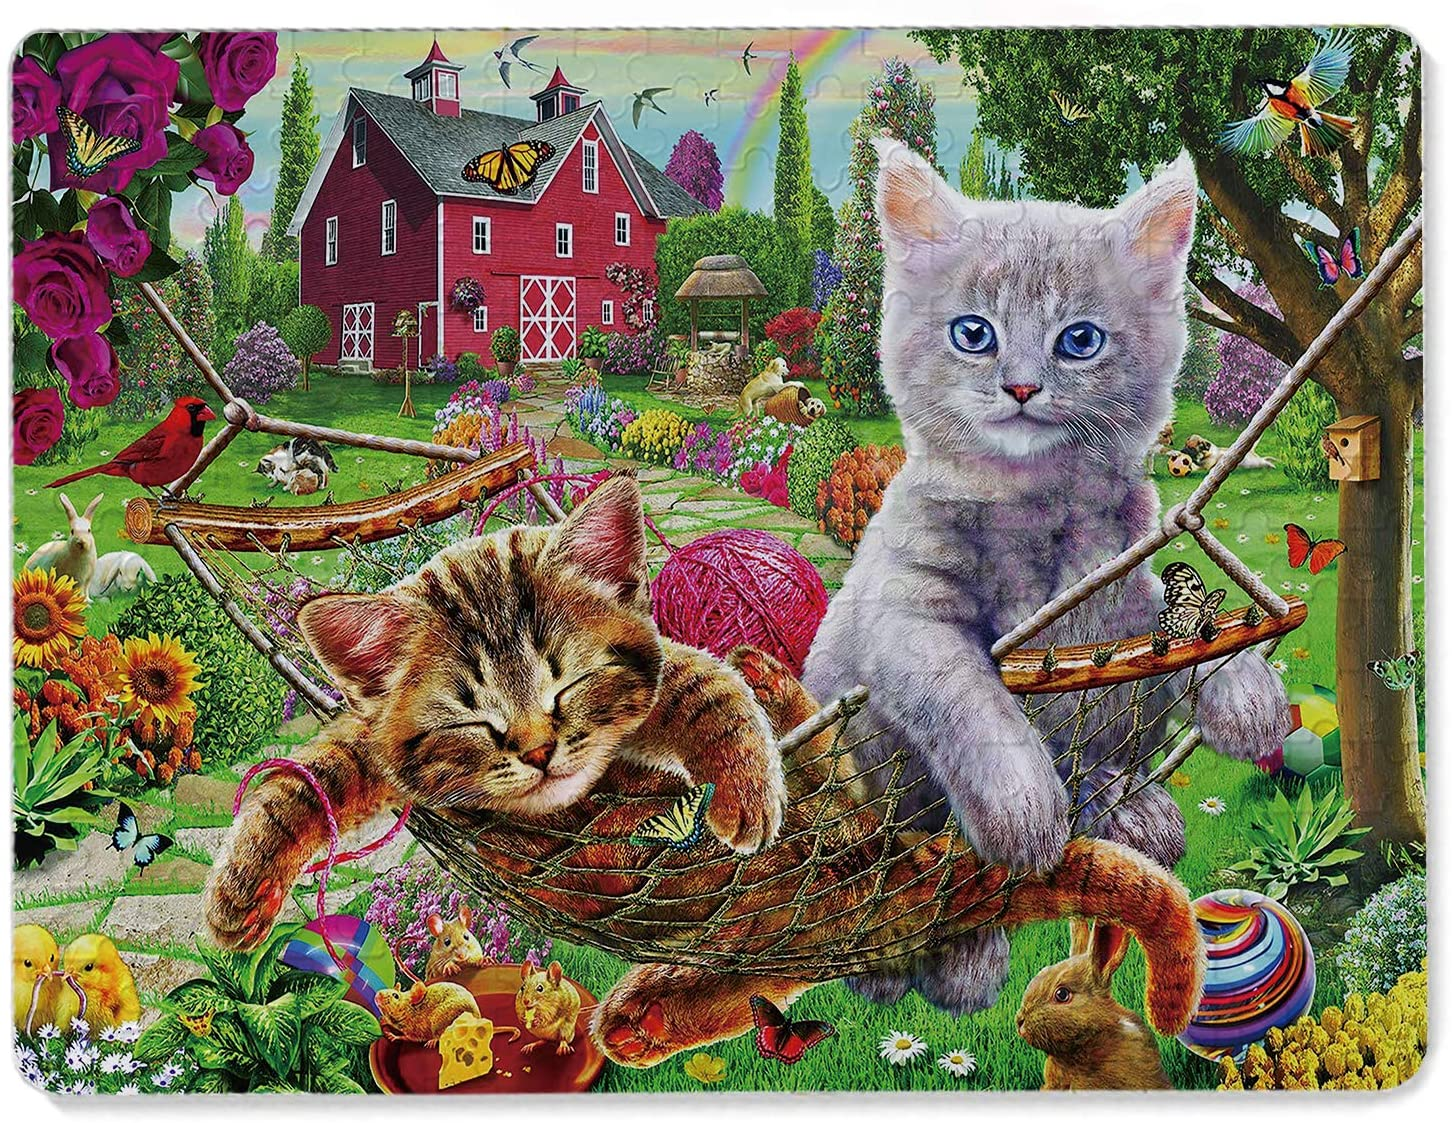 Jigsaw Puzzles 300 Piece, Cats Puzzles for Adults Kids Best Gifts for Family Friends